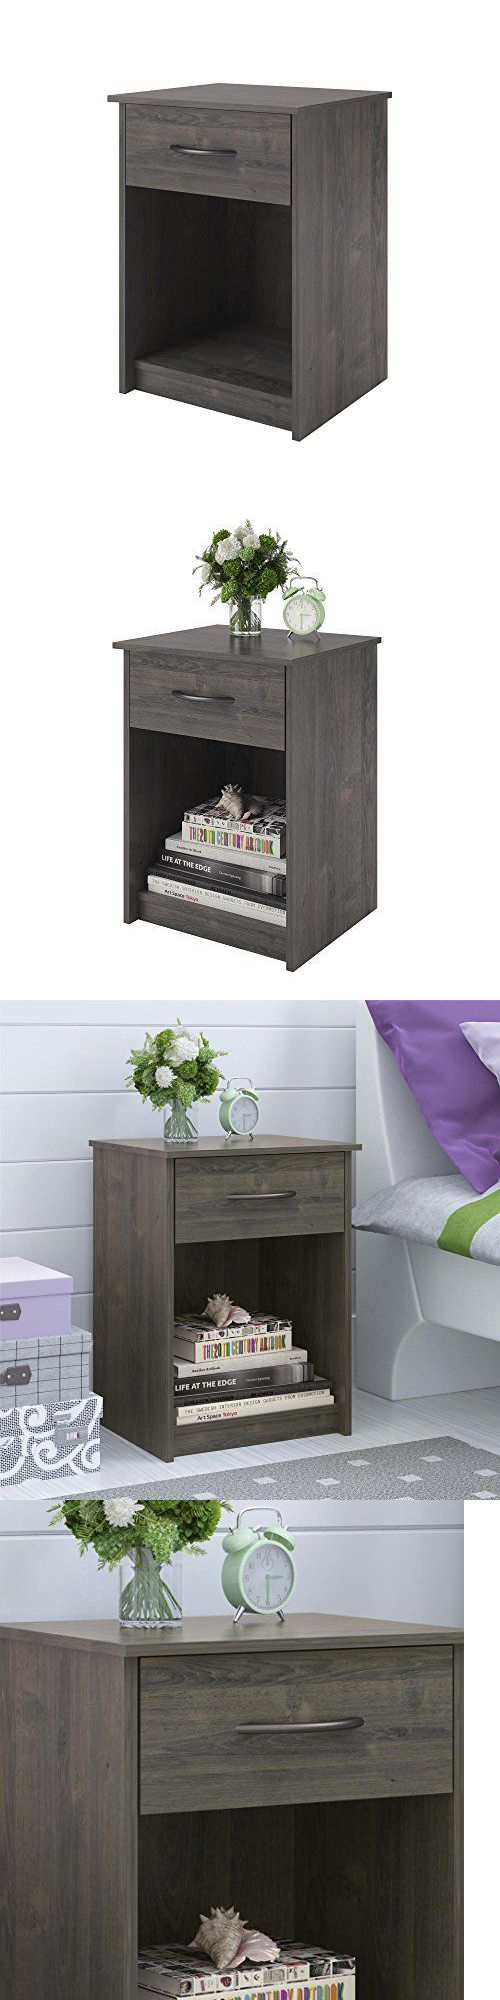 nightstands 38199: nightstand set of 2 bundle end table shelf